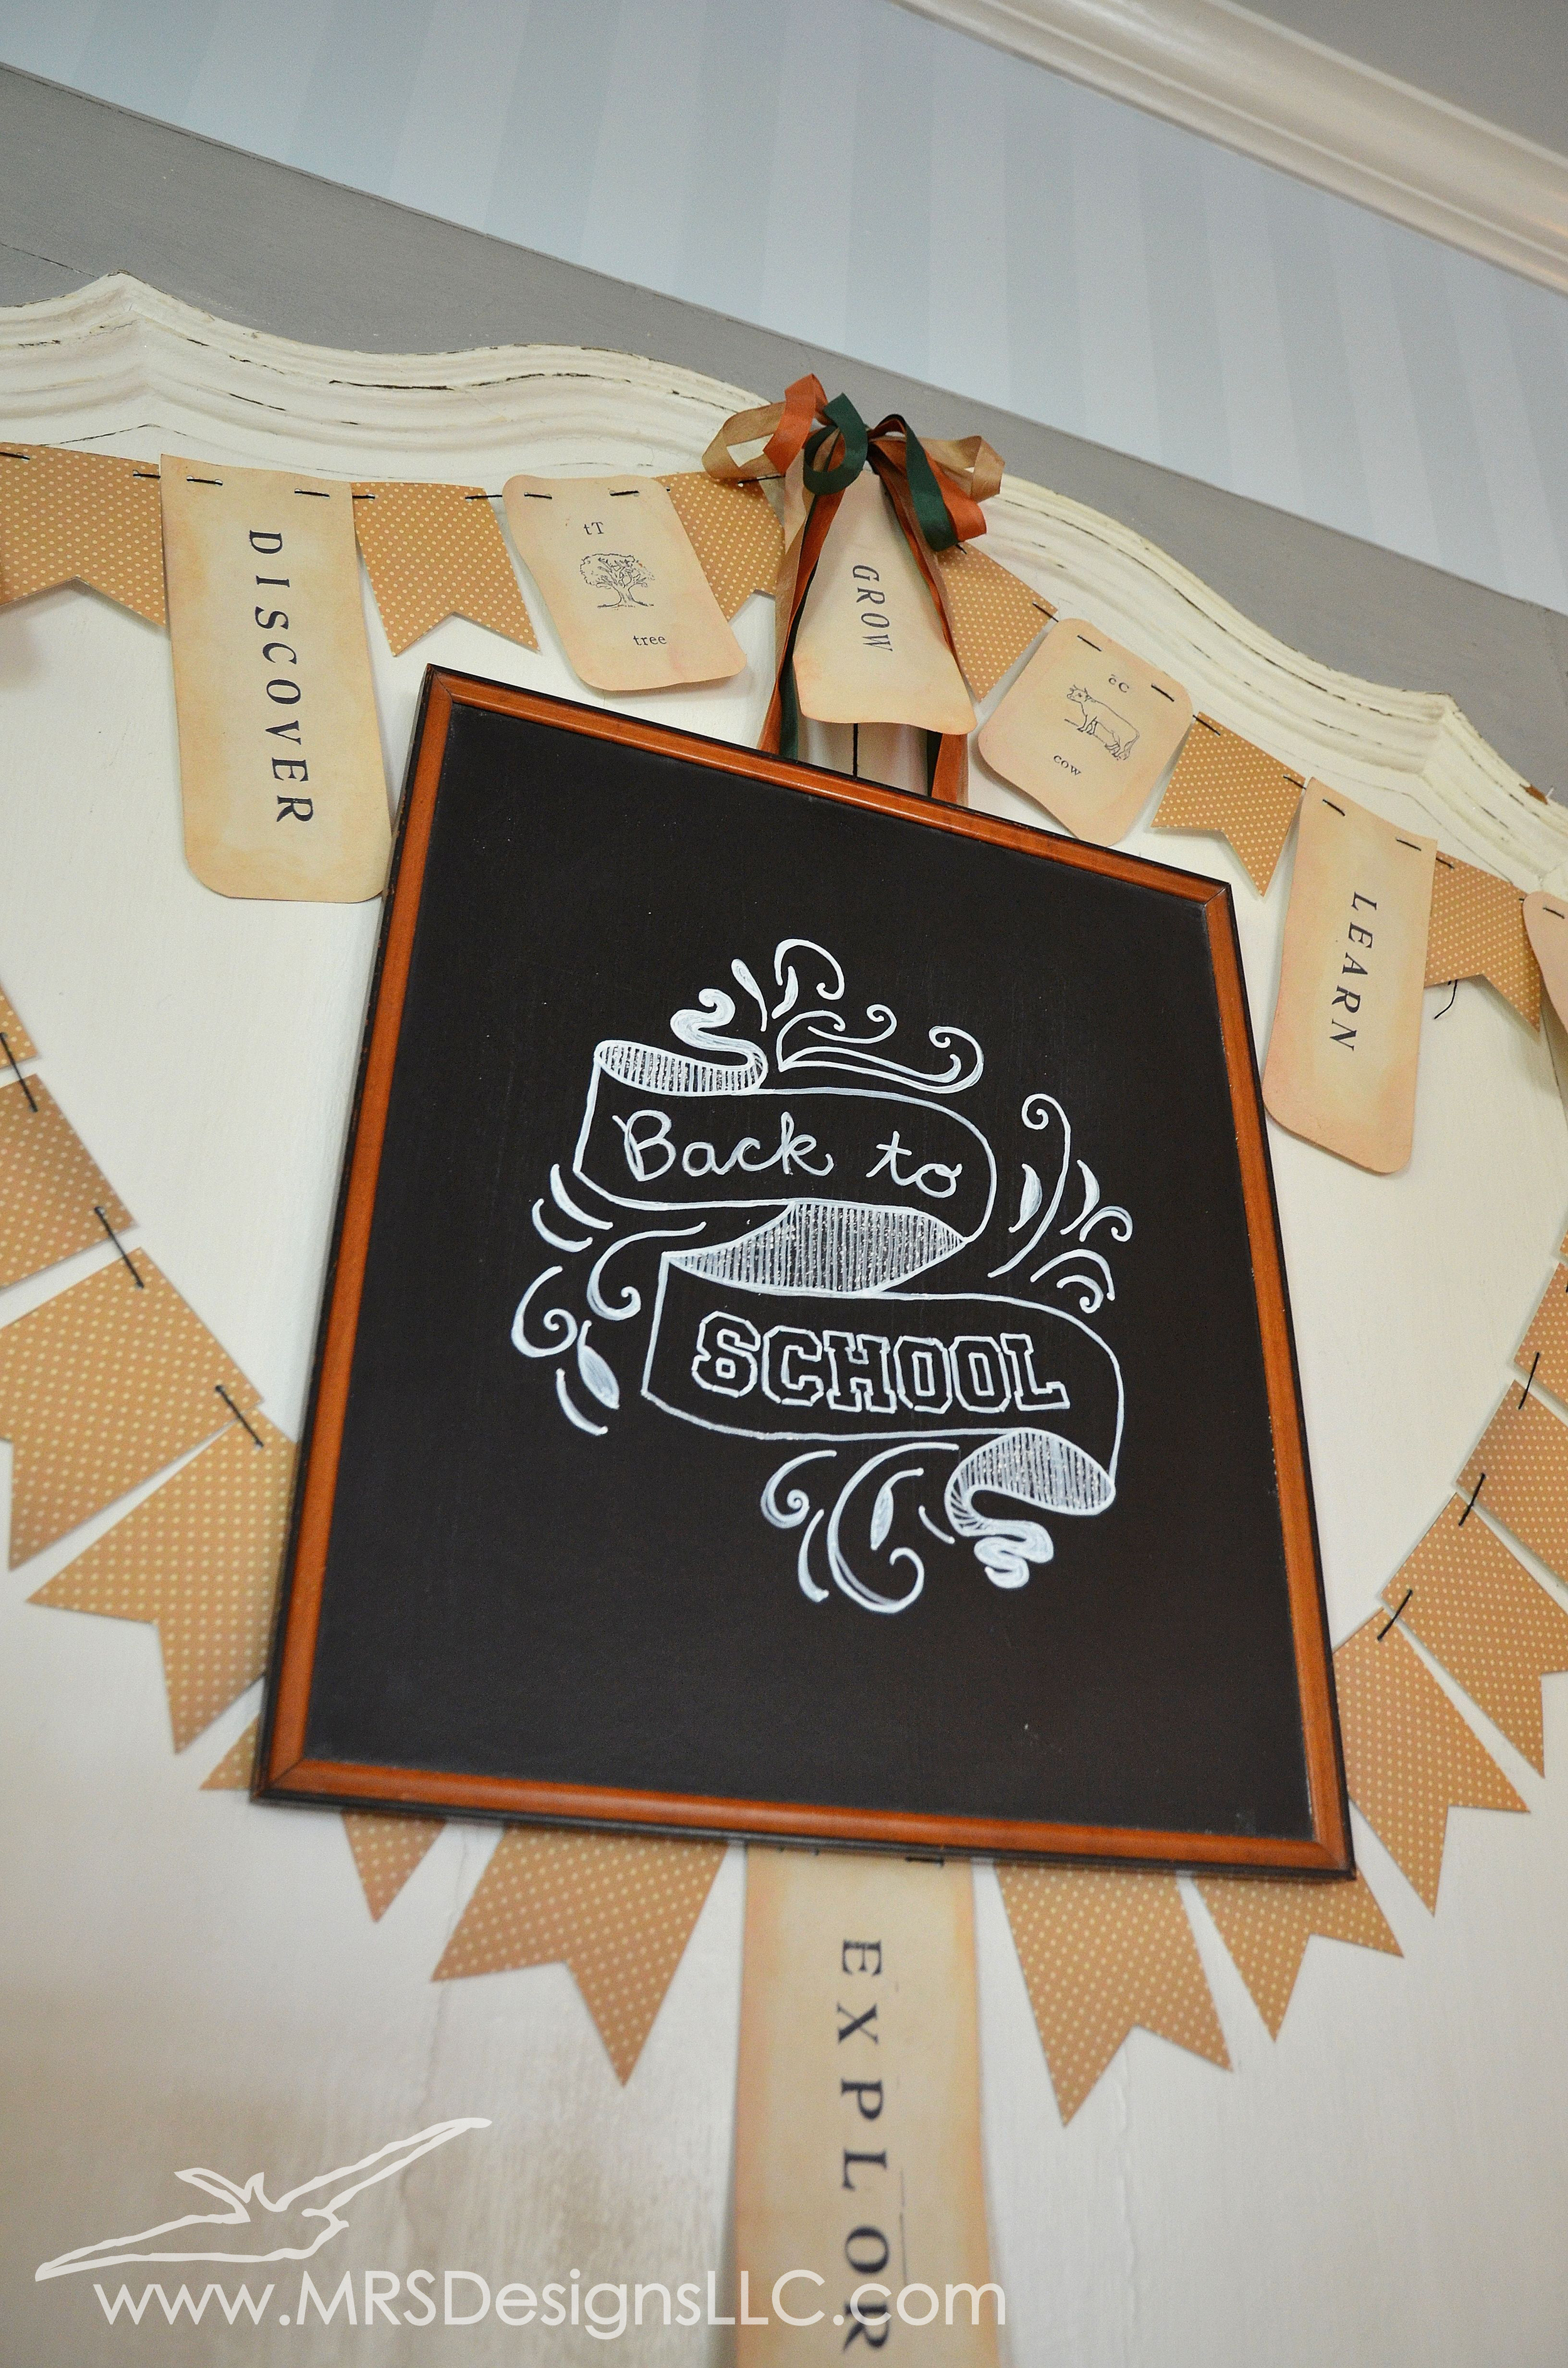 MRS Designs Blog - Back To School Chalkboard Art and Bunting Banner